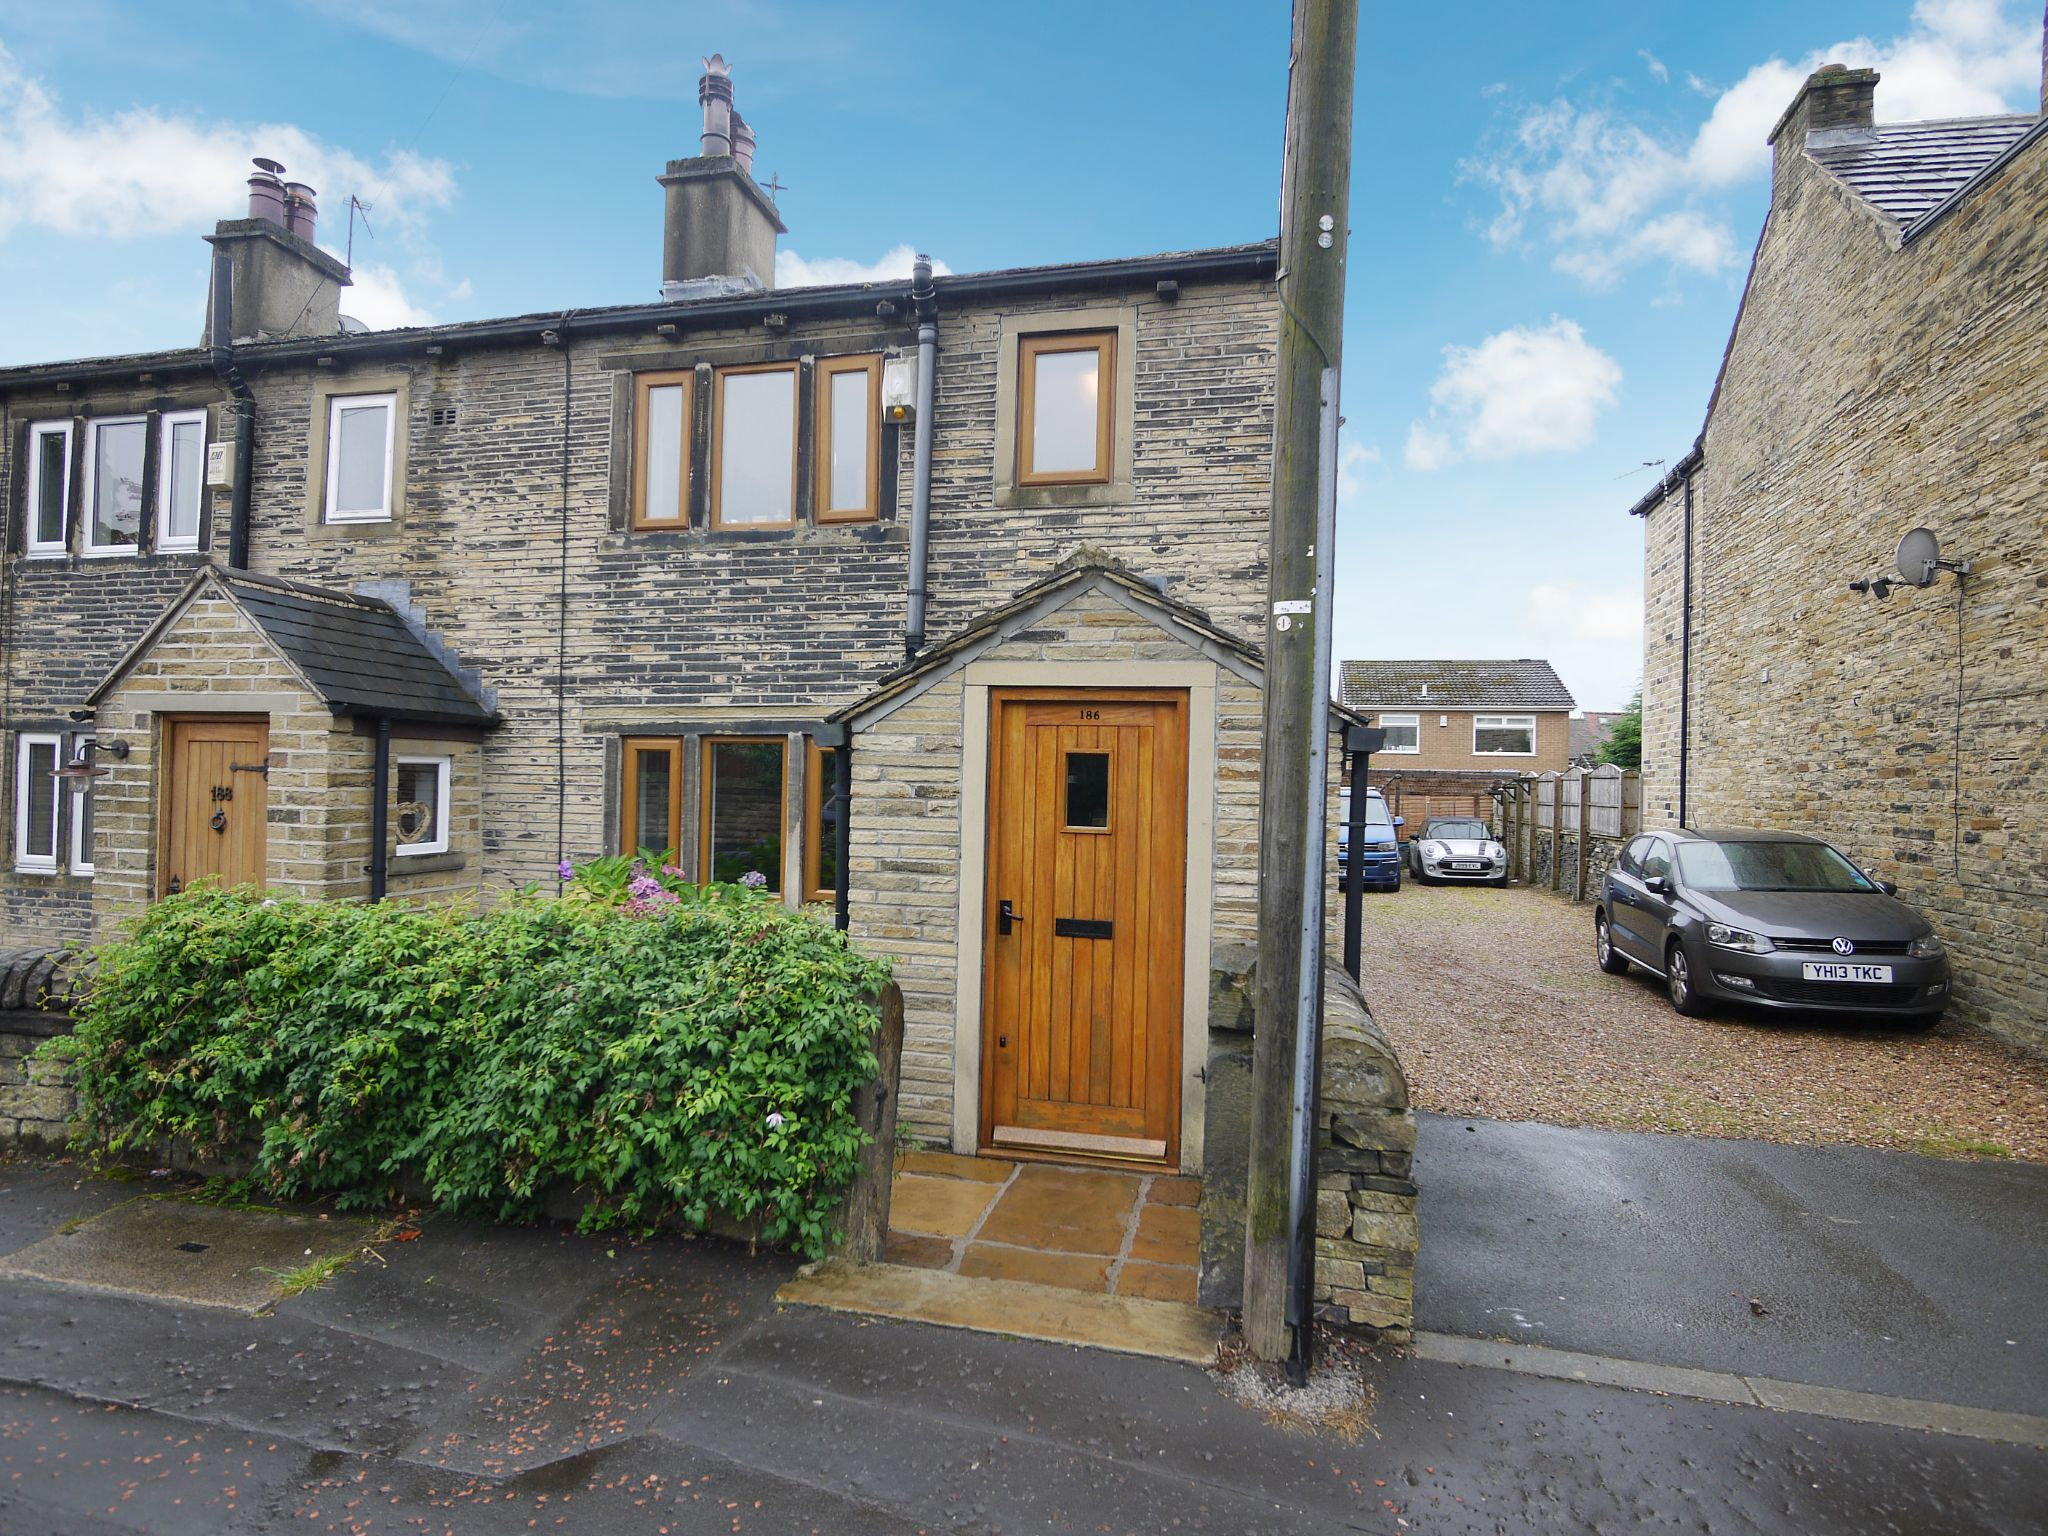 3 bedroom cottage house For Sale in Calderdale - Photograph 3.